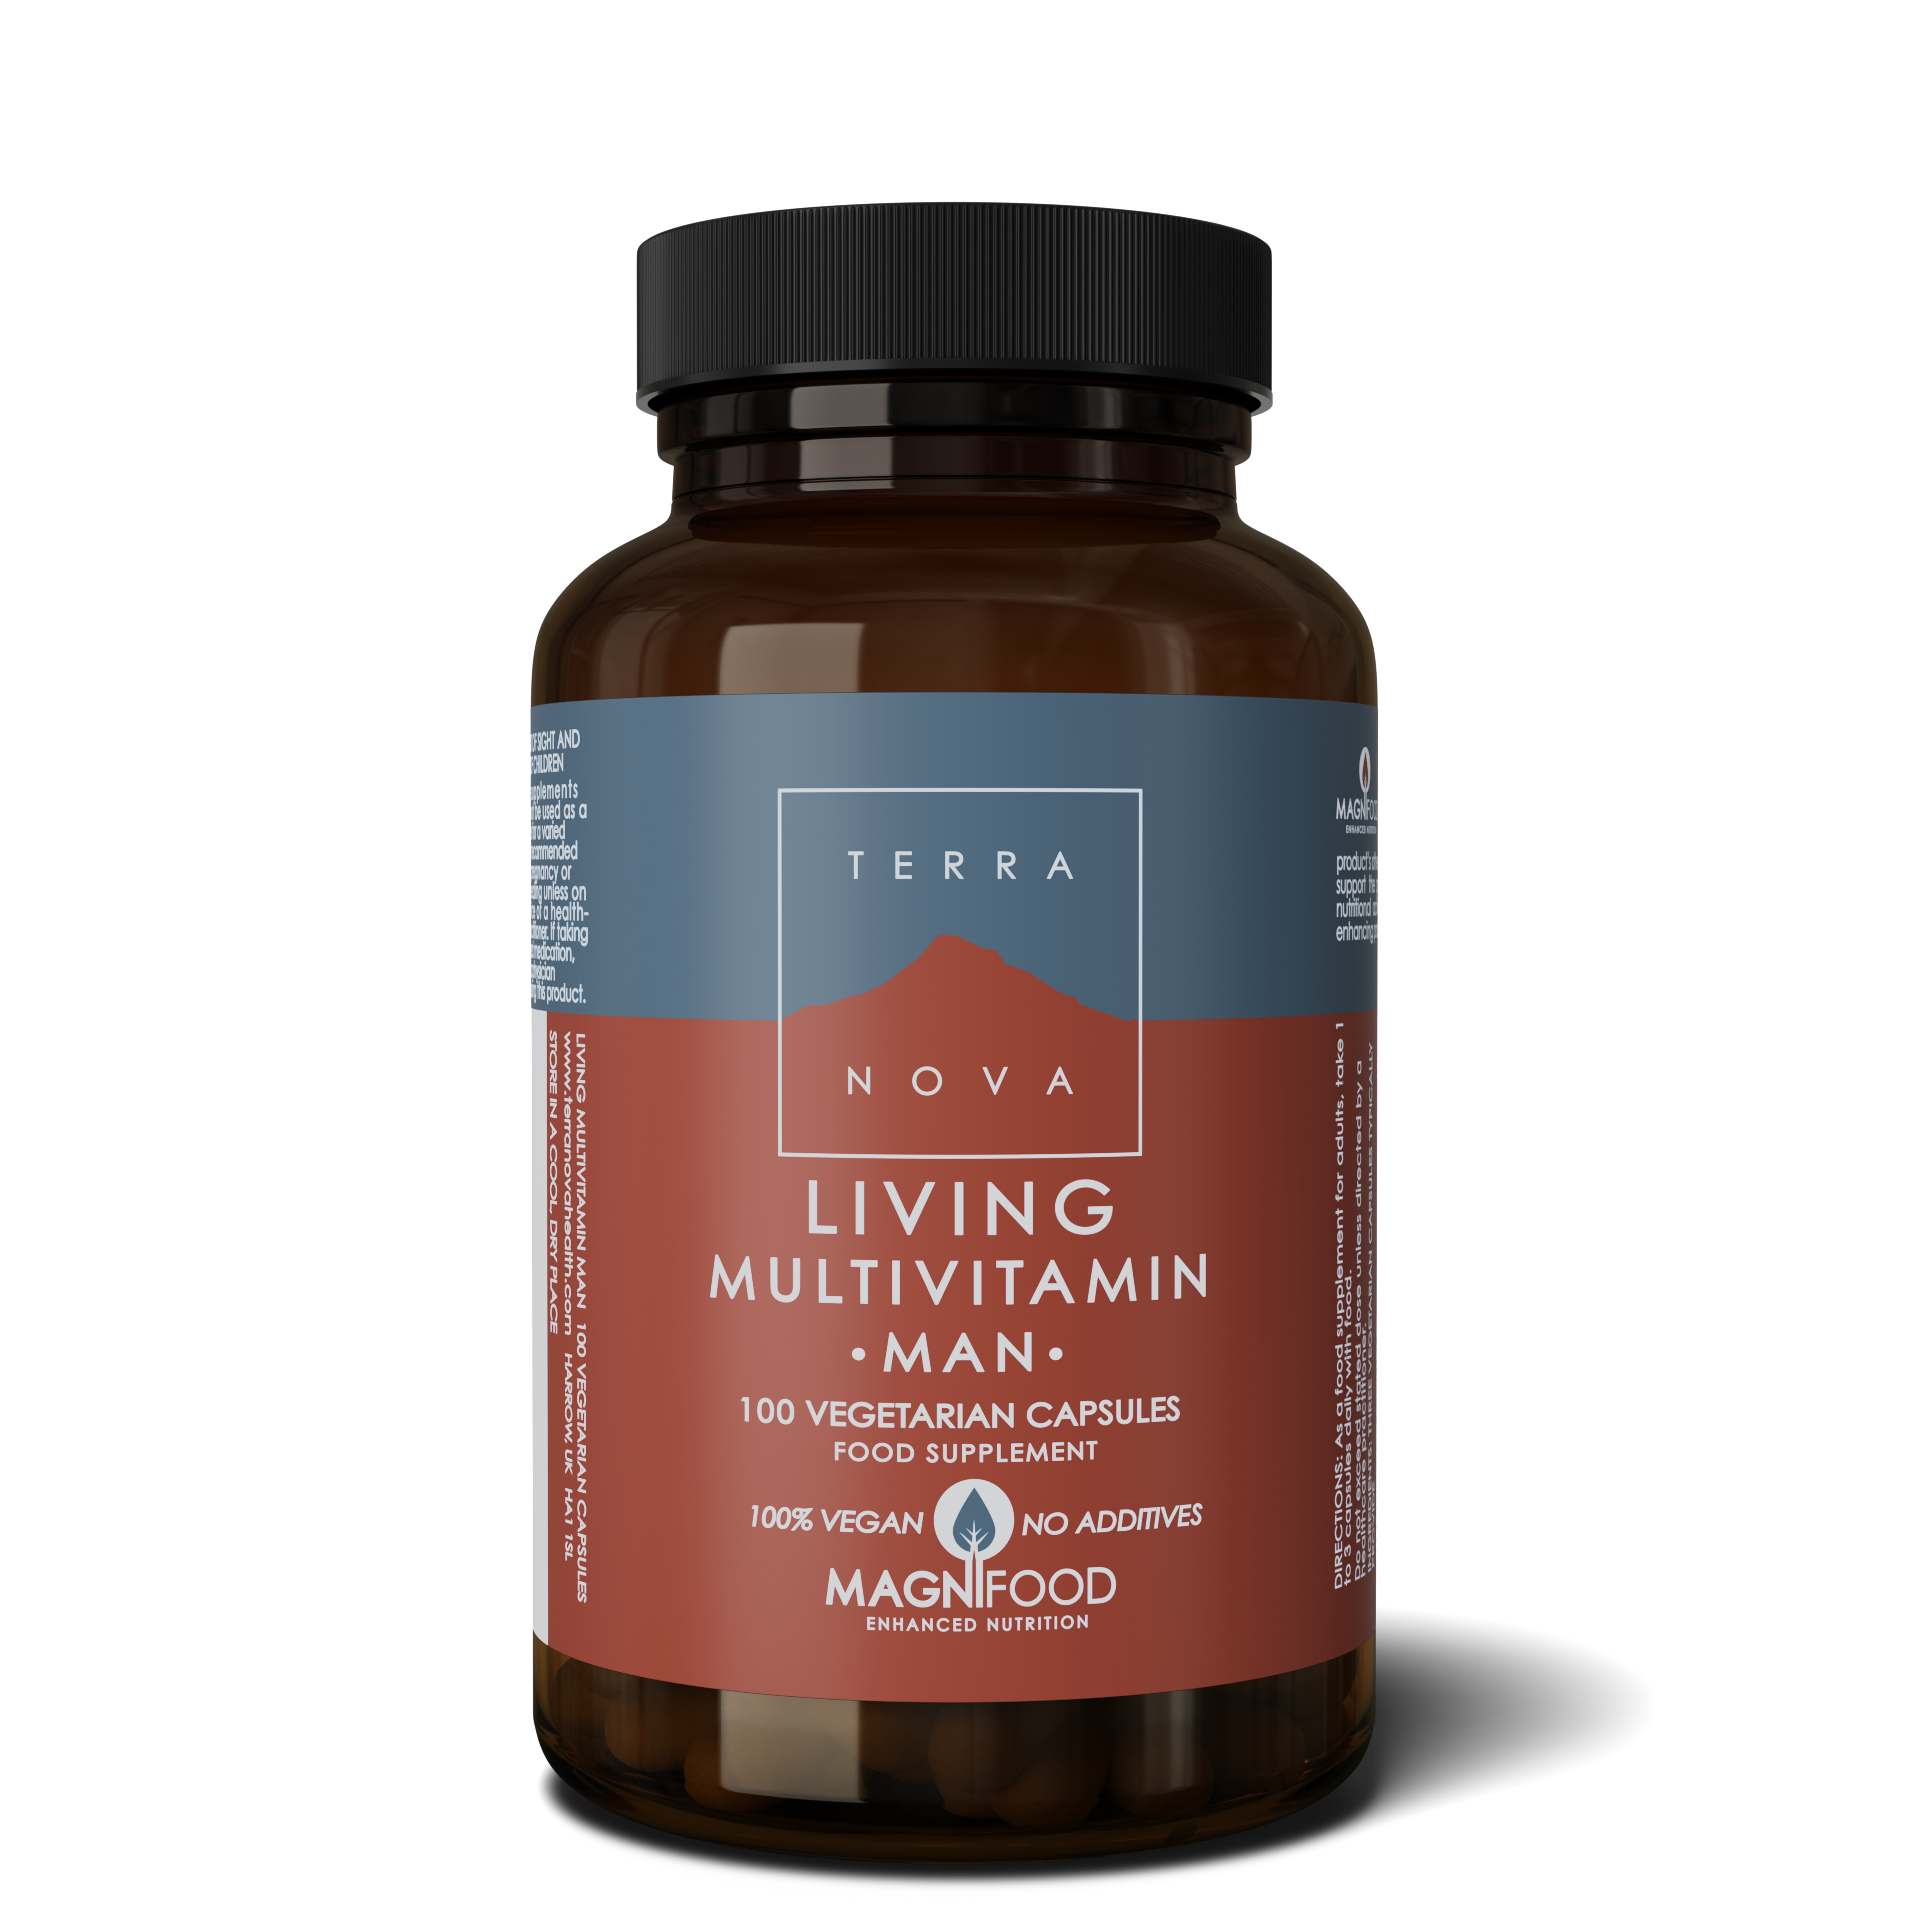 Living Multivitamin MAN 100kaps, Terranova (Vegan)